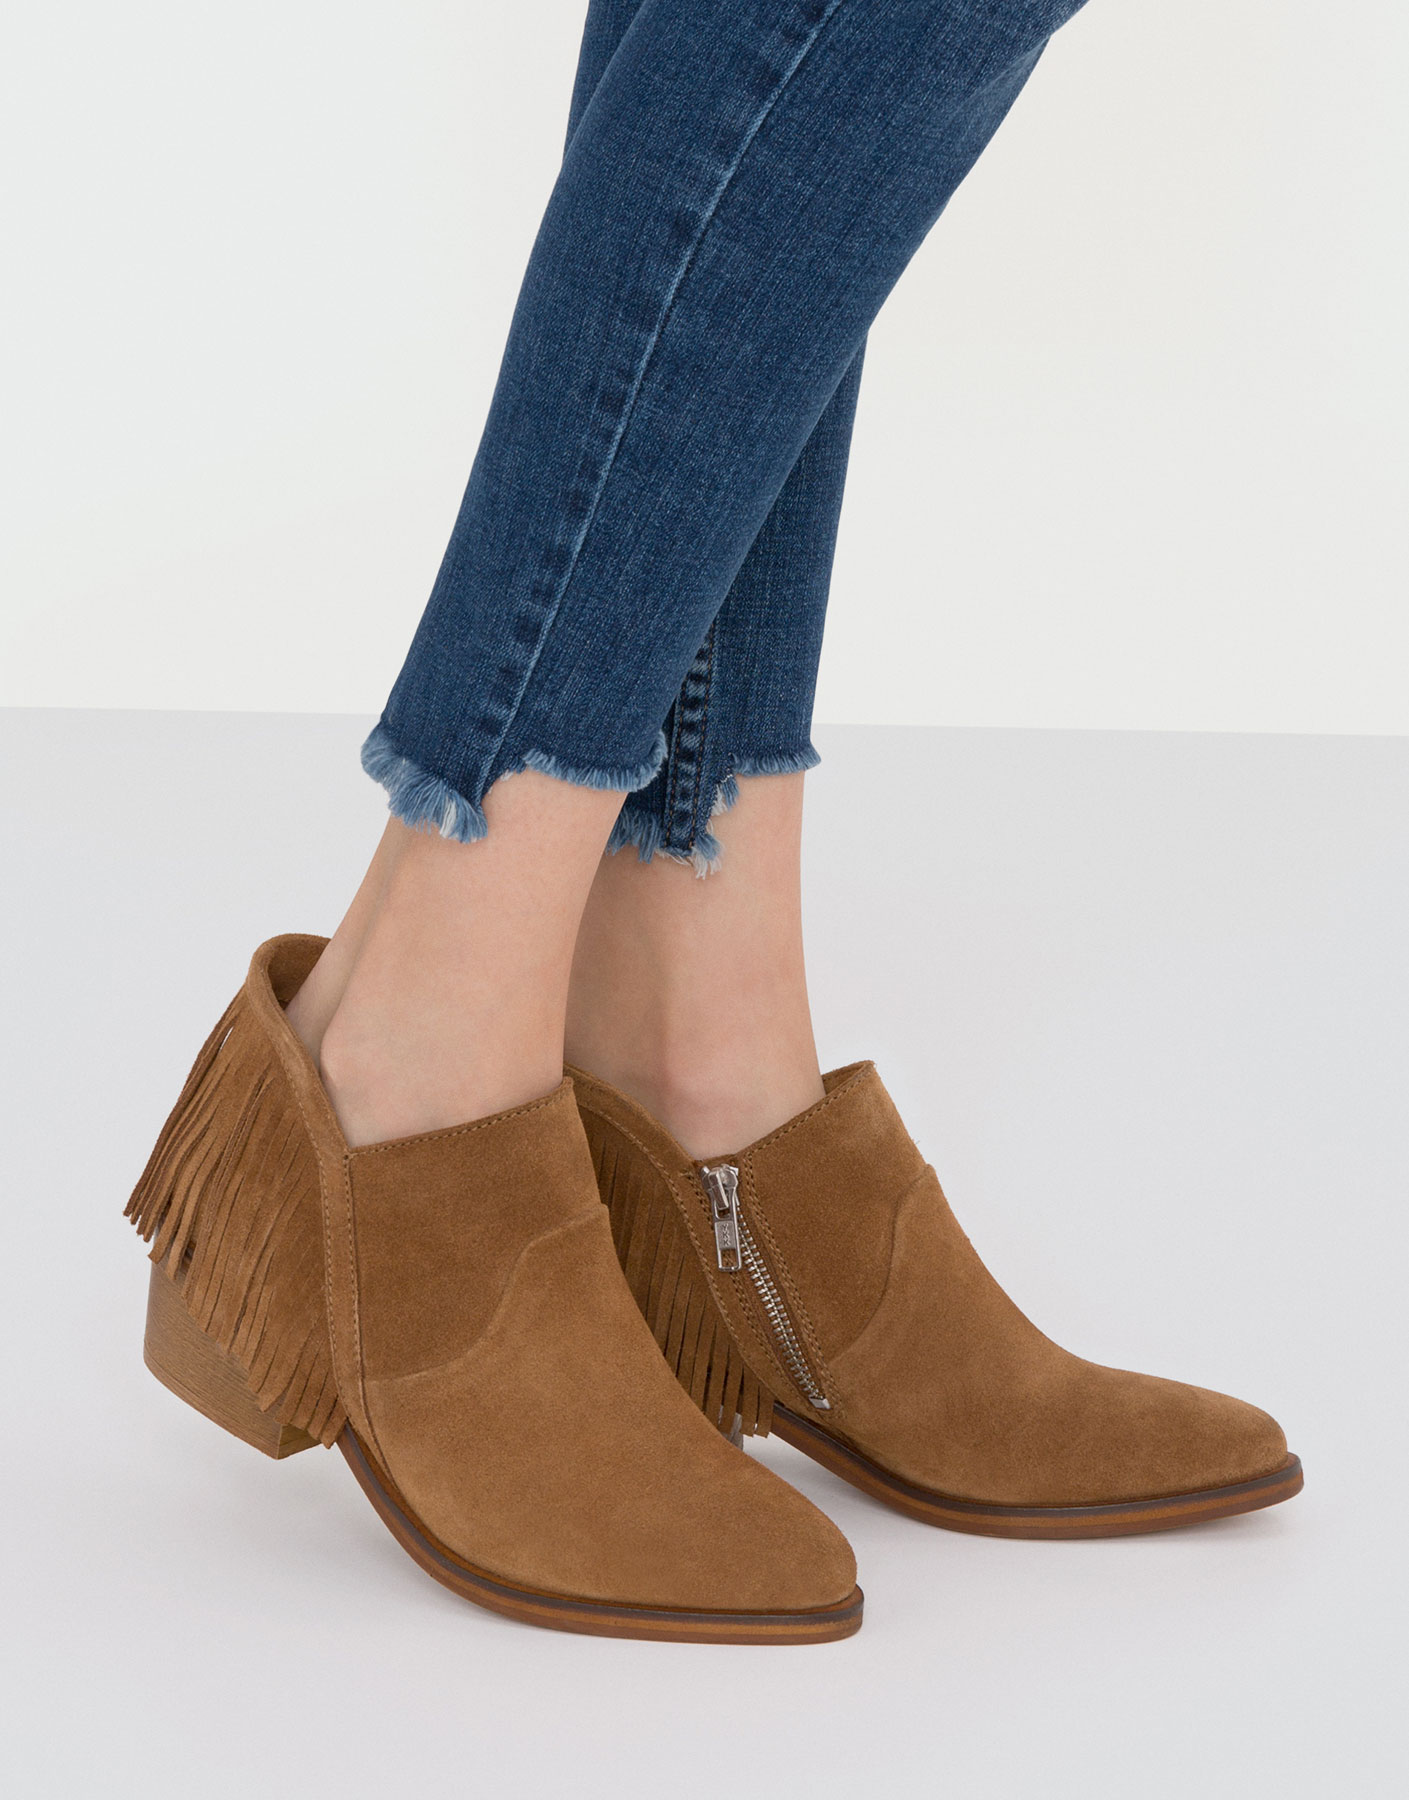 Suede ankle boots with fringing detail